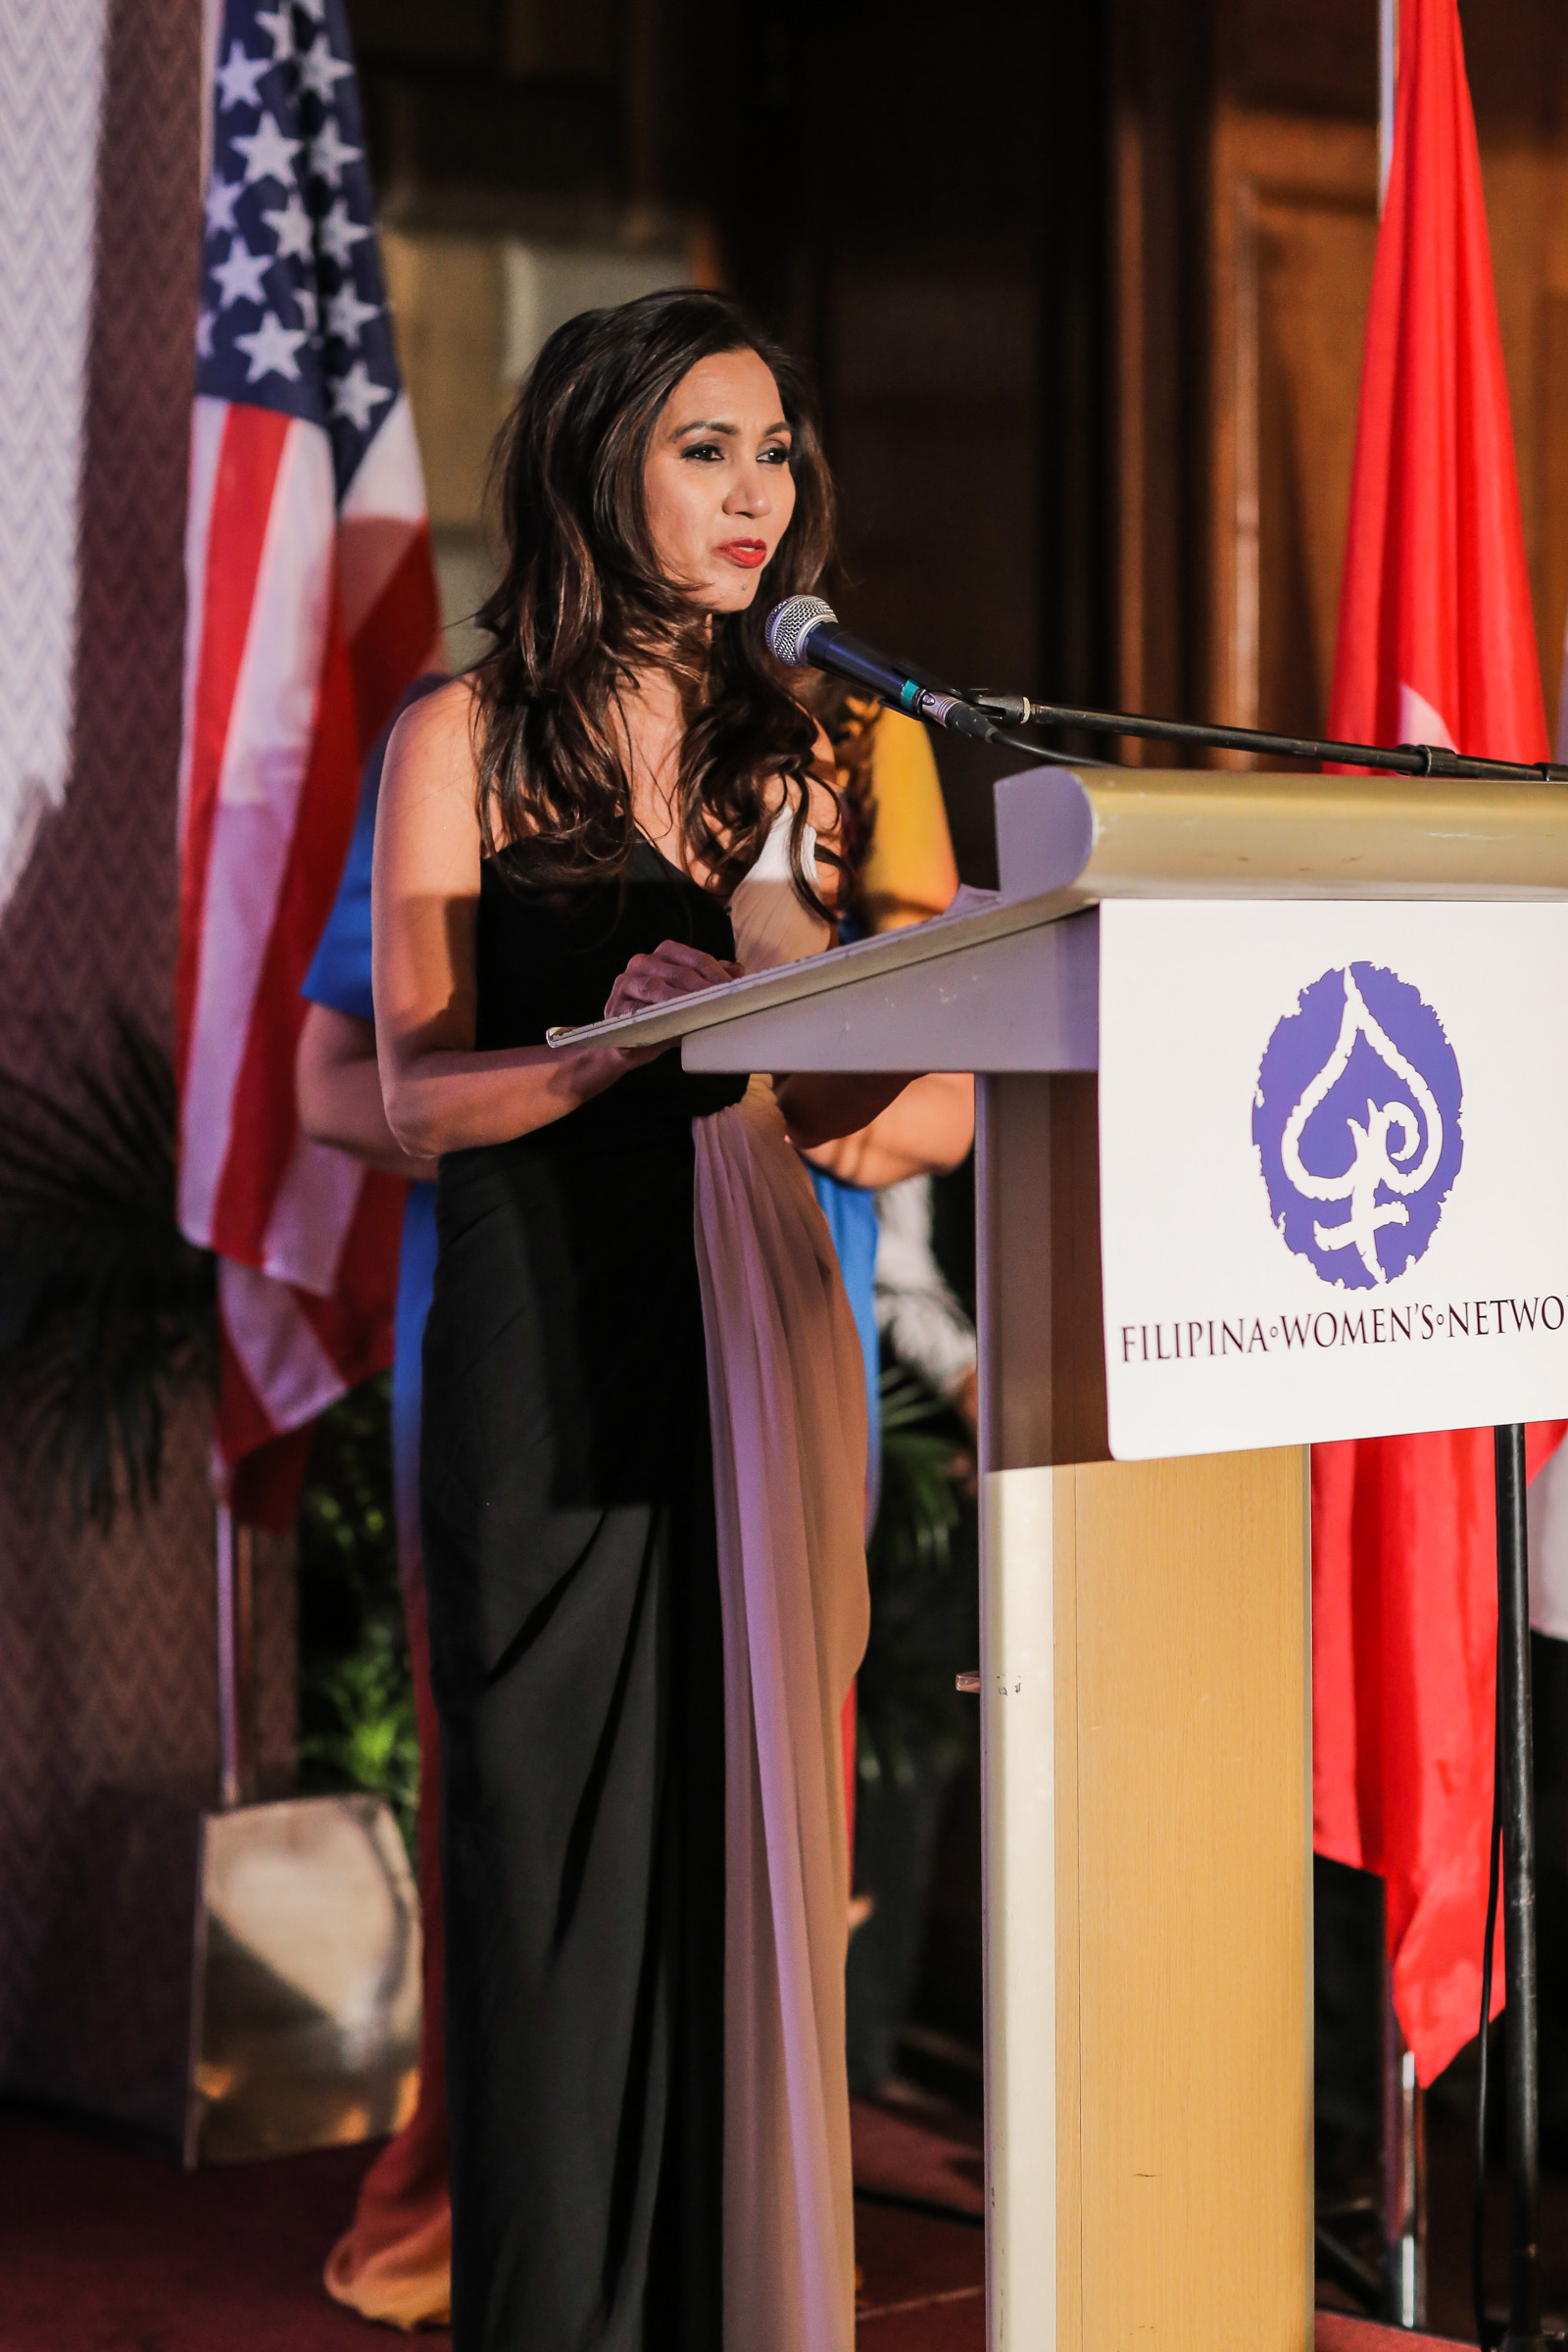 Rosario Cajucom-Bradbury (Global FWN100™ '16)Adviser to The Wallace Business Forum (WBF), Former Managing Director & CEO, SGS Philippines & SGS Gulf Ltd. ROHQ Former Chairwoman of Philippine Swiss Business Council delivers the Global FWN100™ Acceptance Speech on behalf of 2016's Most Influential Filipina Women in the World.